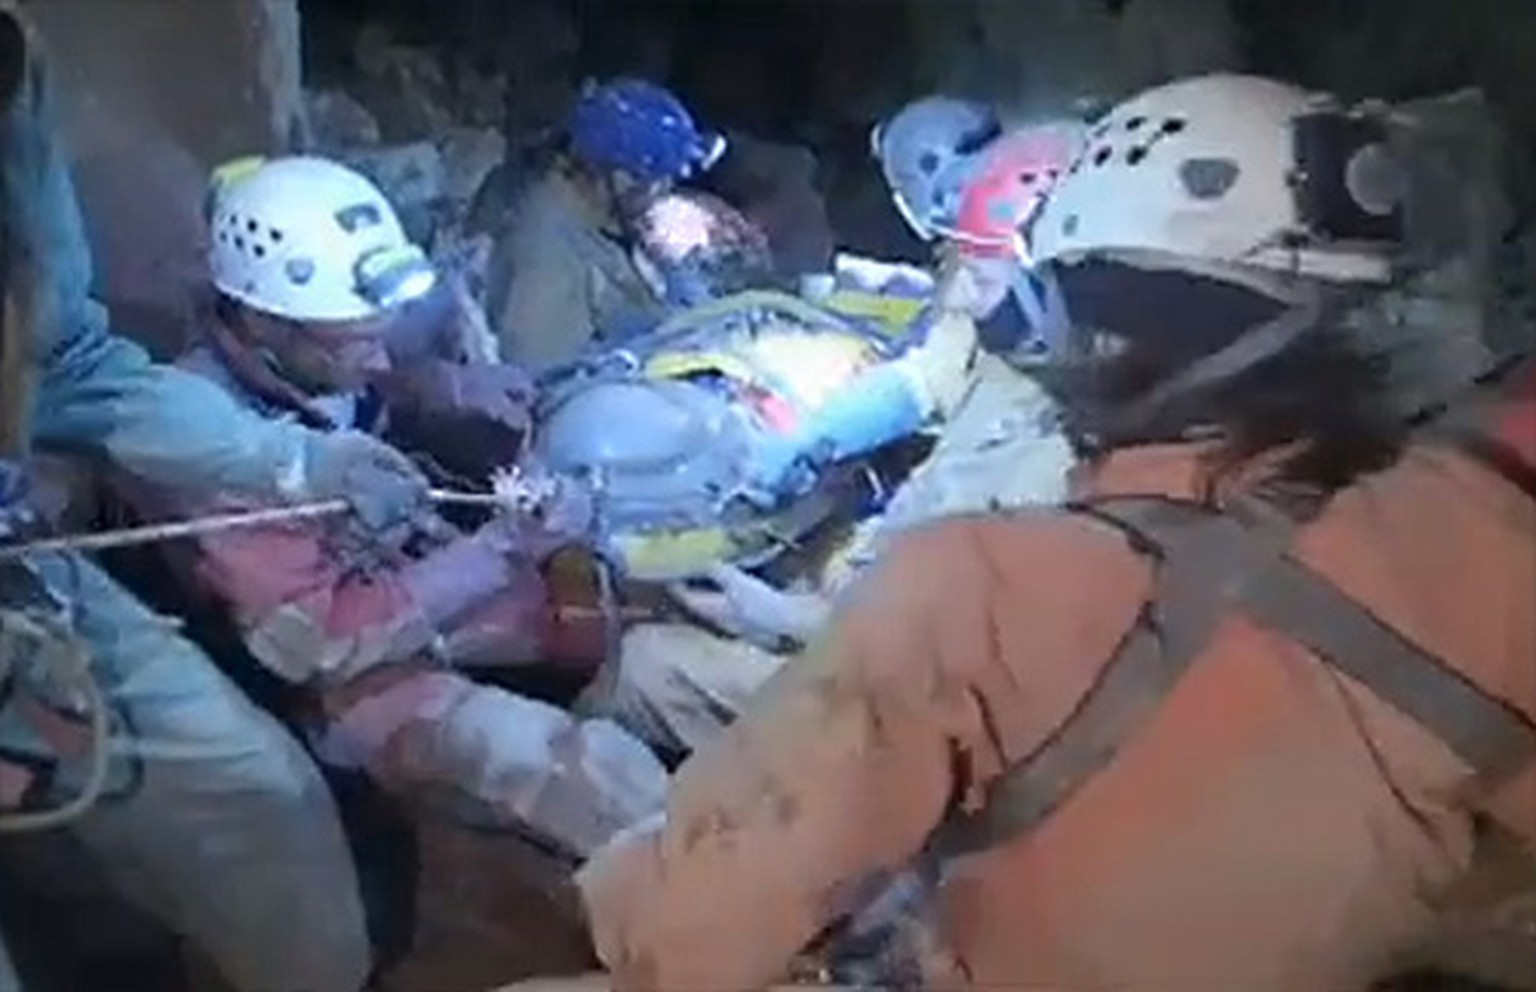 Rescuers help injured researcher Johann Westhauser inside the Riesending cave in Untersberg, south of Munich in this still image taken from video from a camera mounted on the helmet of a rescuer released by Bavaria's mountain rescue team